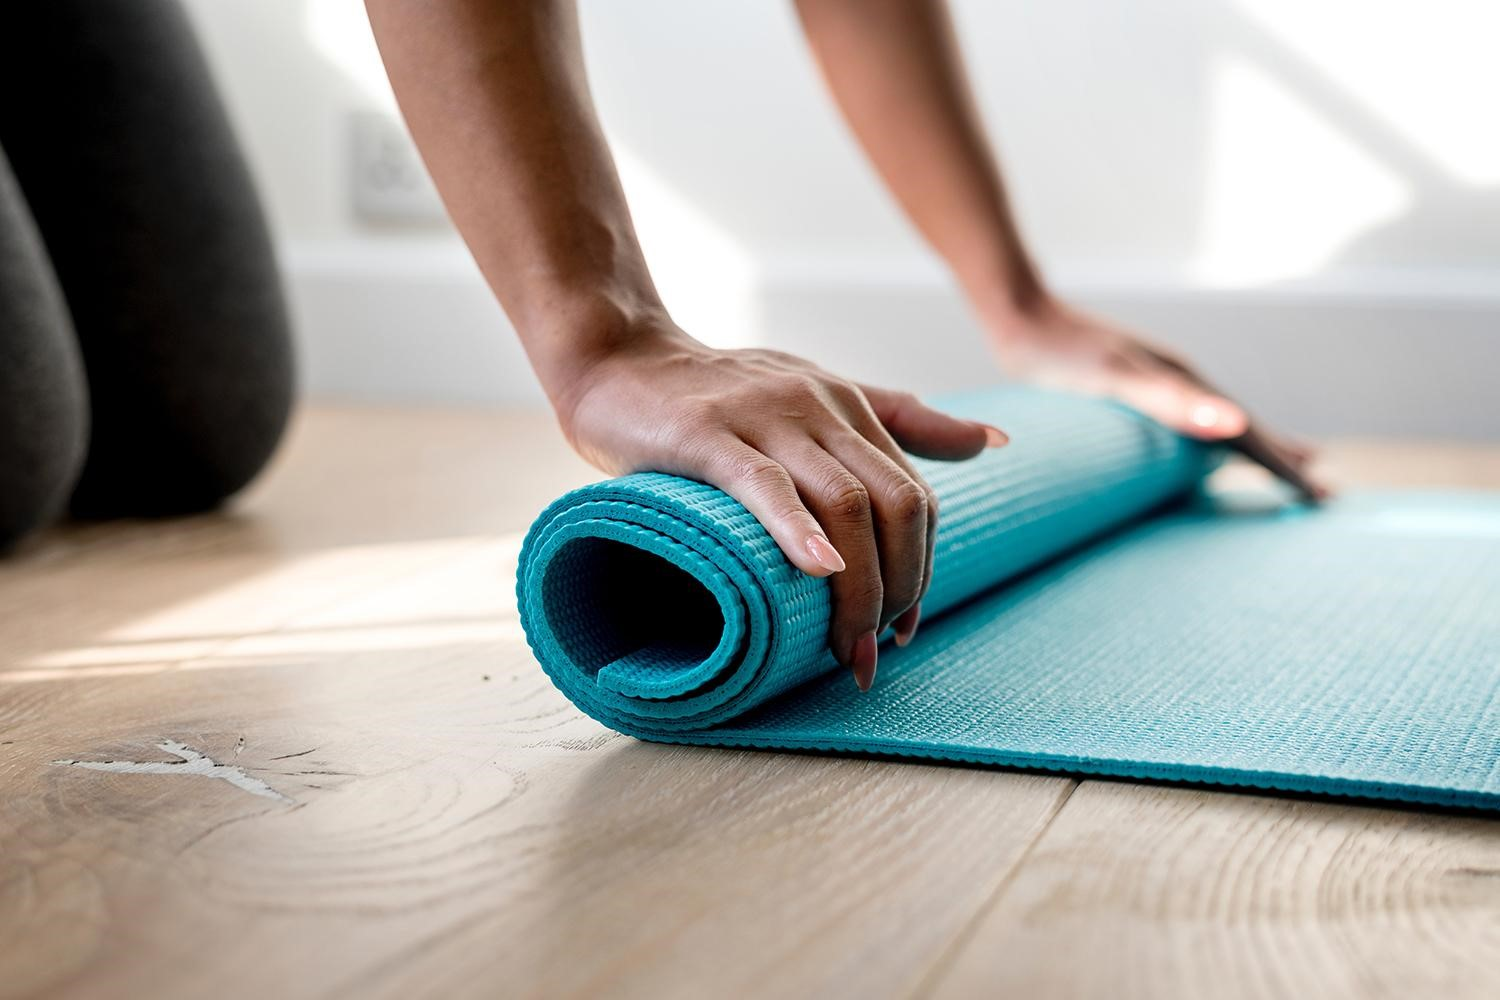 Yoga For Germaphobes: 5 Ways to Avoid Bacteria